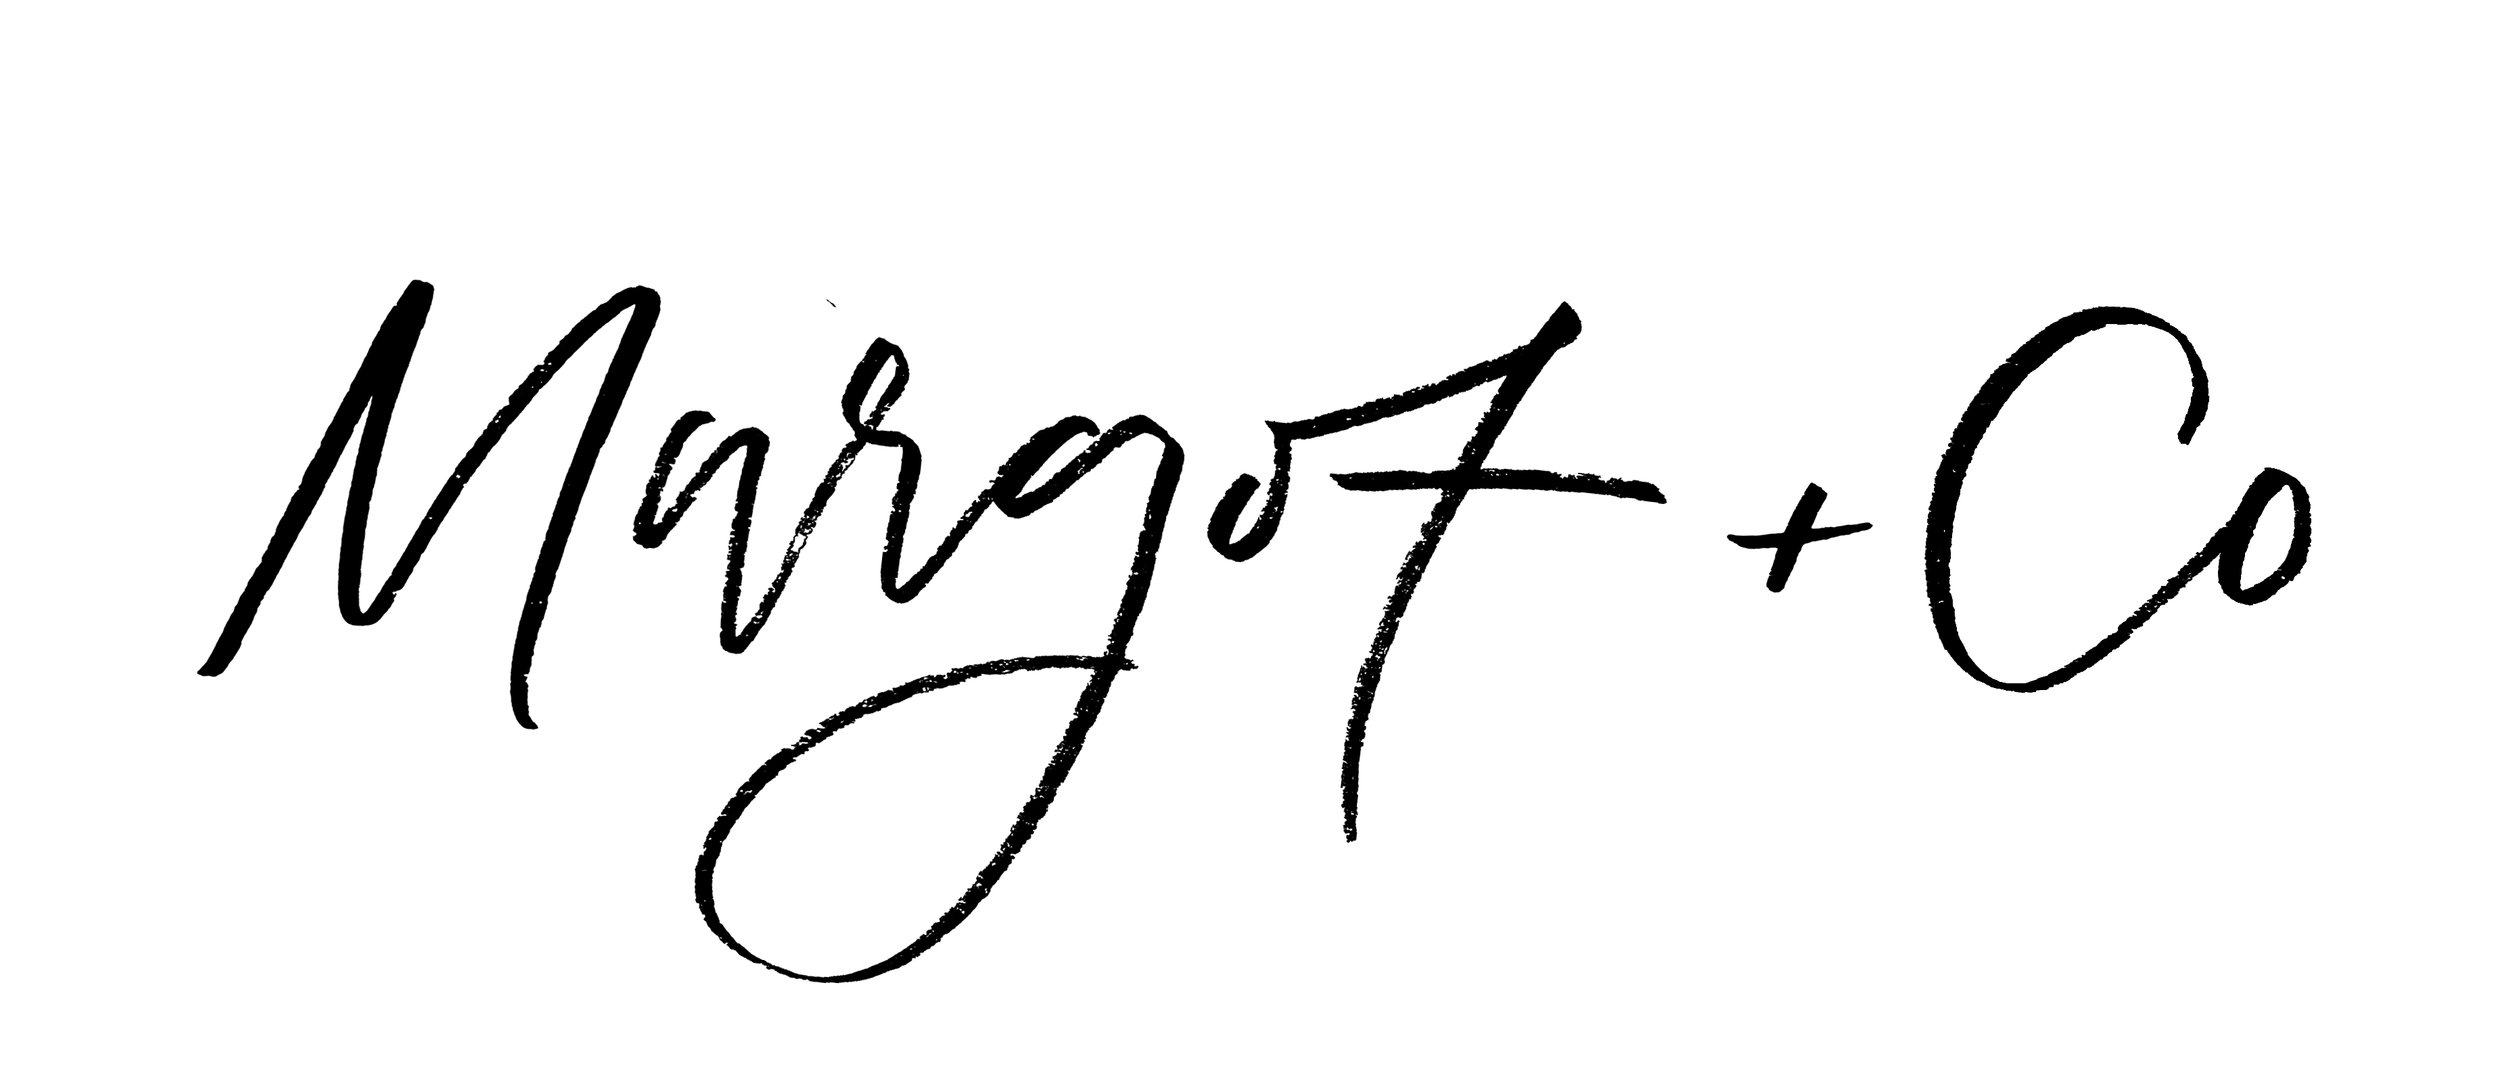 margot+co logo.jpg